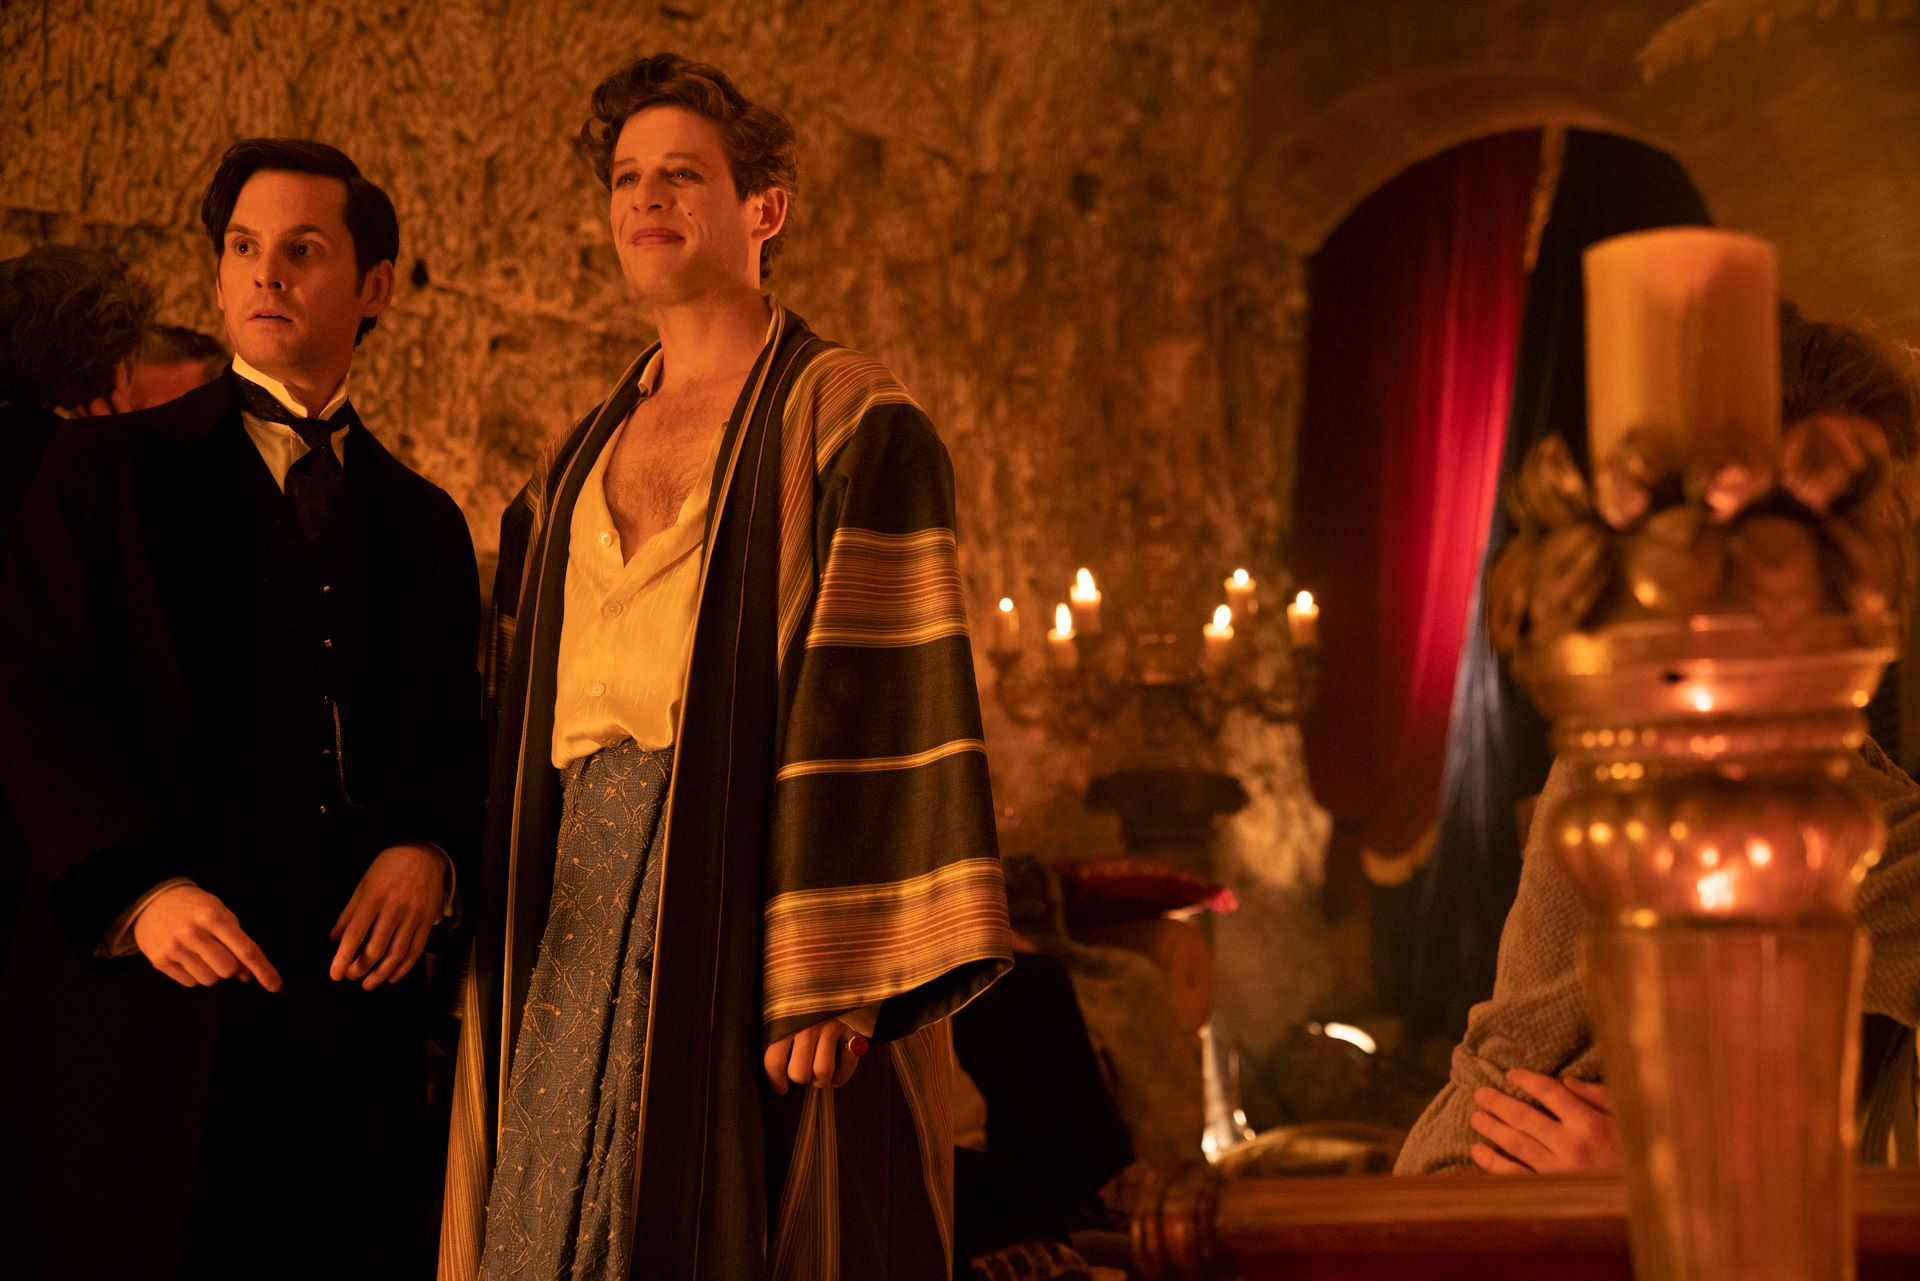 Tom Riley and James Norton in 'The Nevers'